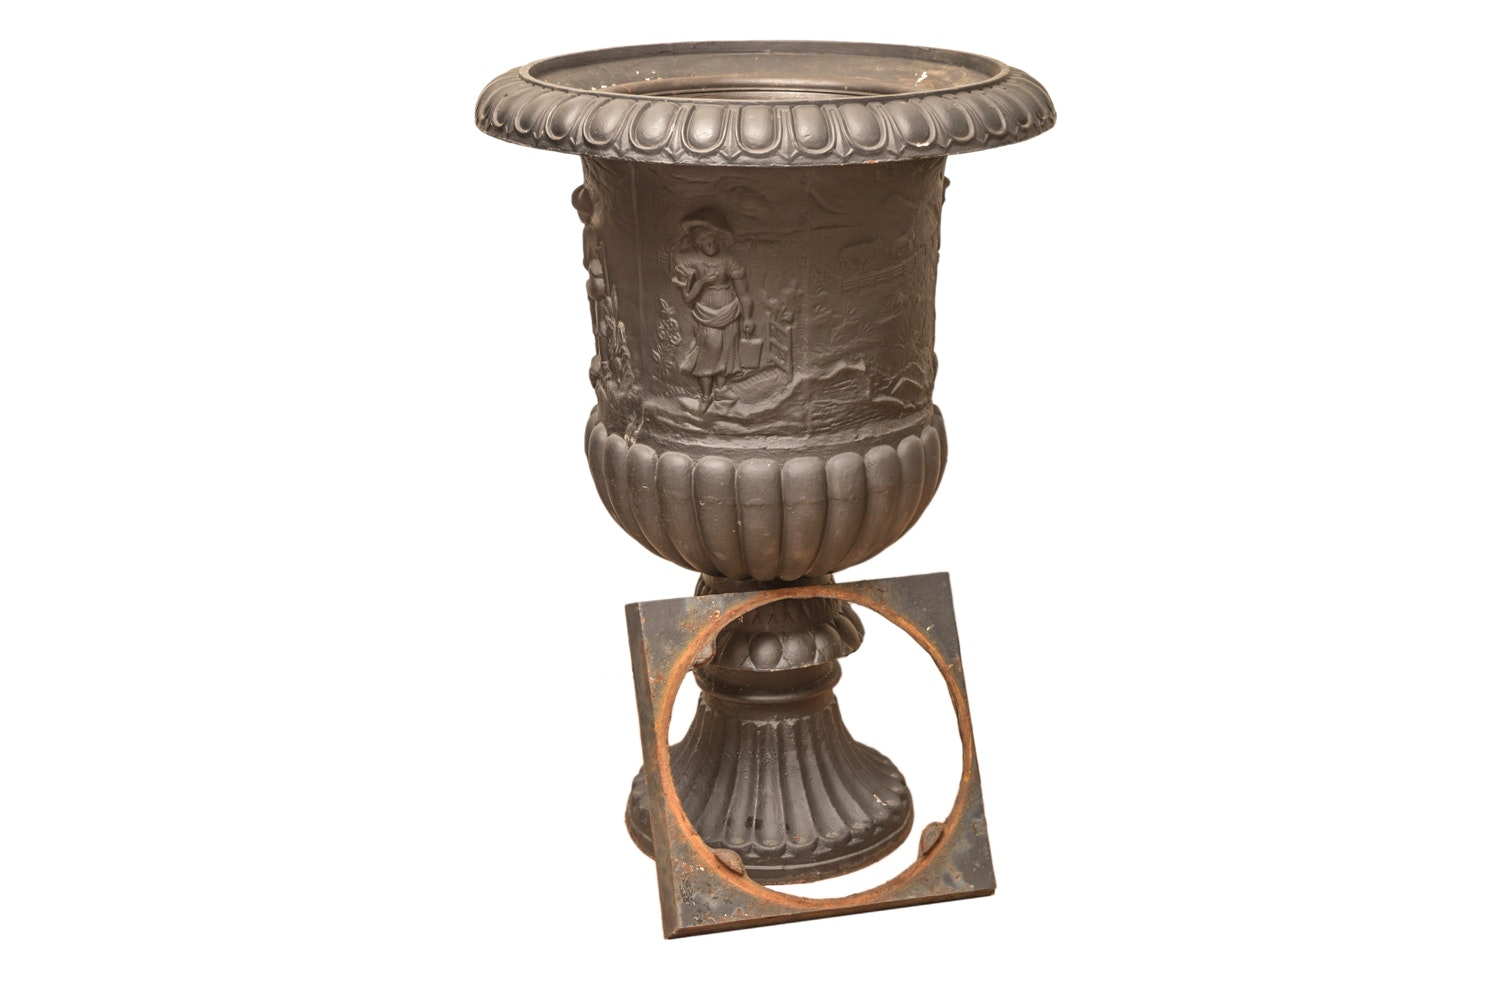 Oversized Vintage French Cast Iron Urn